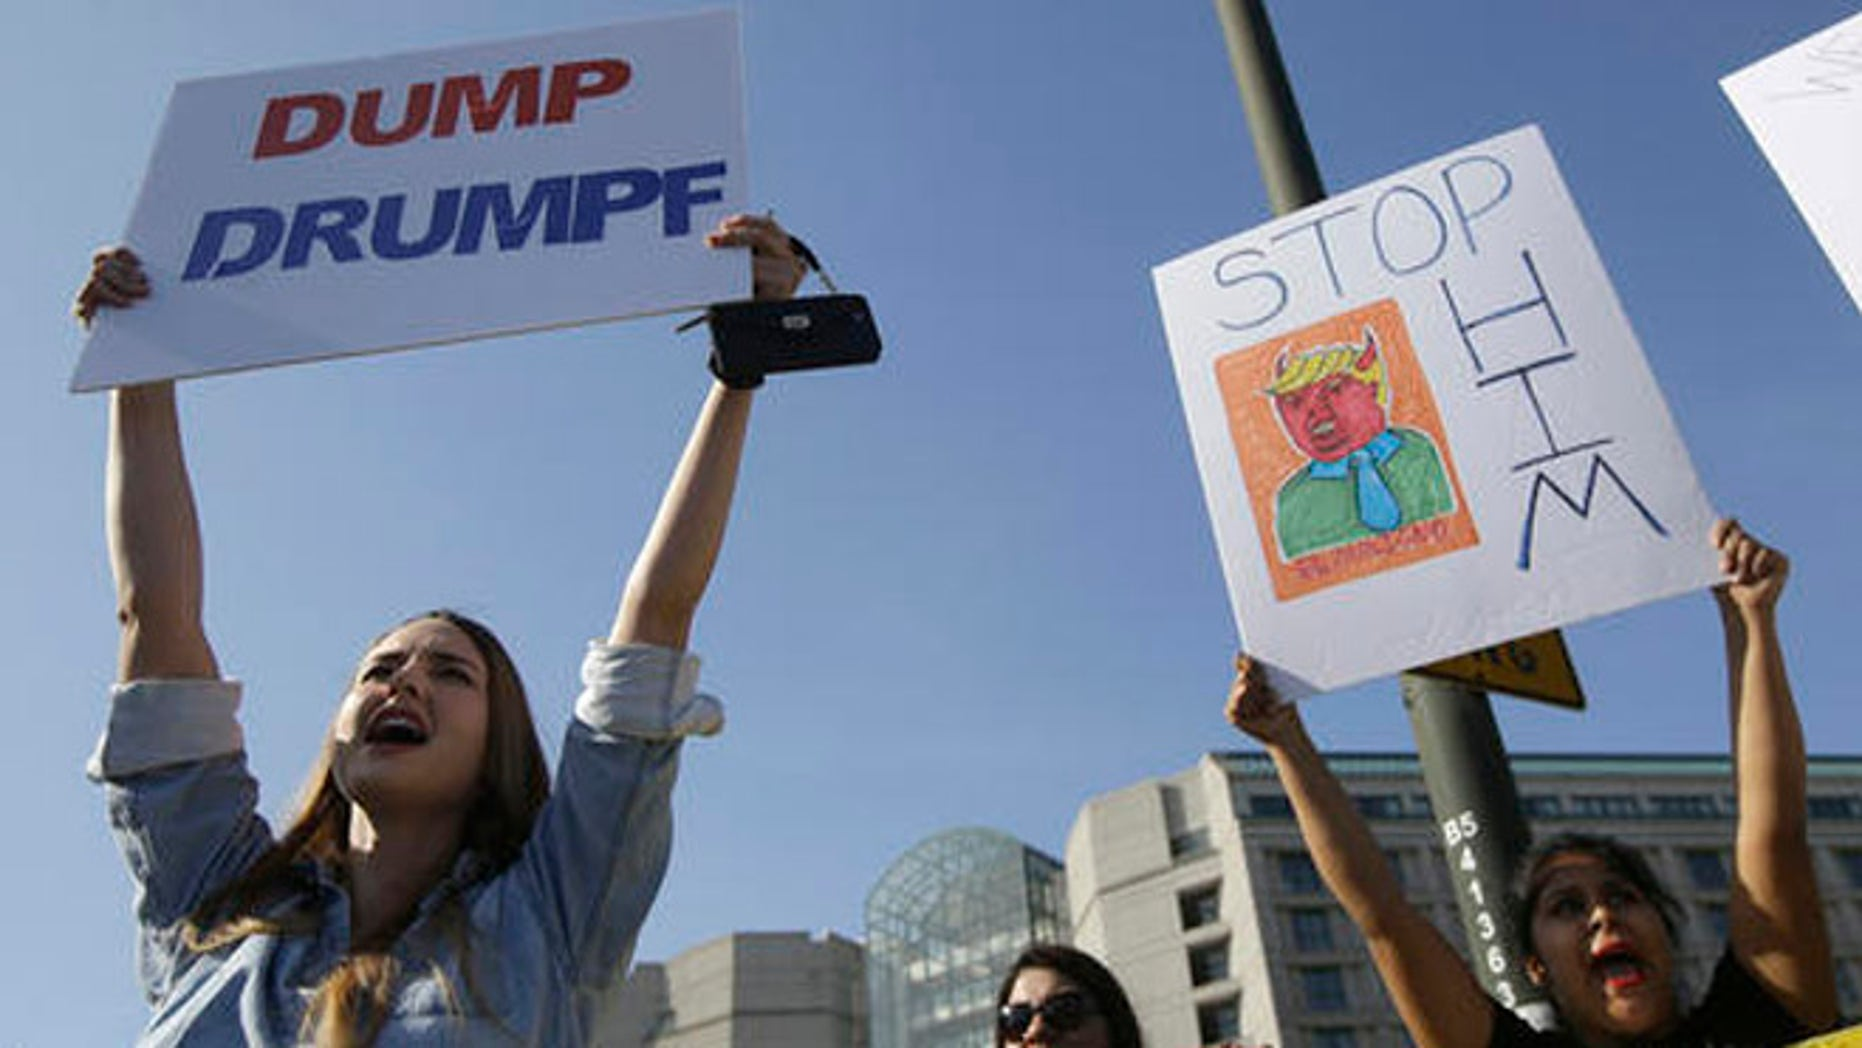 Women hold up signs protesting Donald Trump outside of the Hyatt Regency hotel before the California Republican Party 2016 Convention in Burlingame, Calif., Friday, April 29, 2016. (AP Photo/Jeff Chiu)